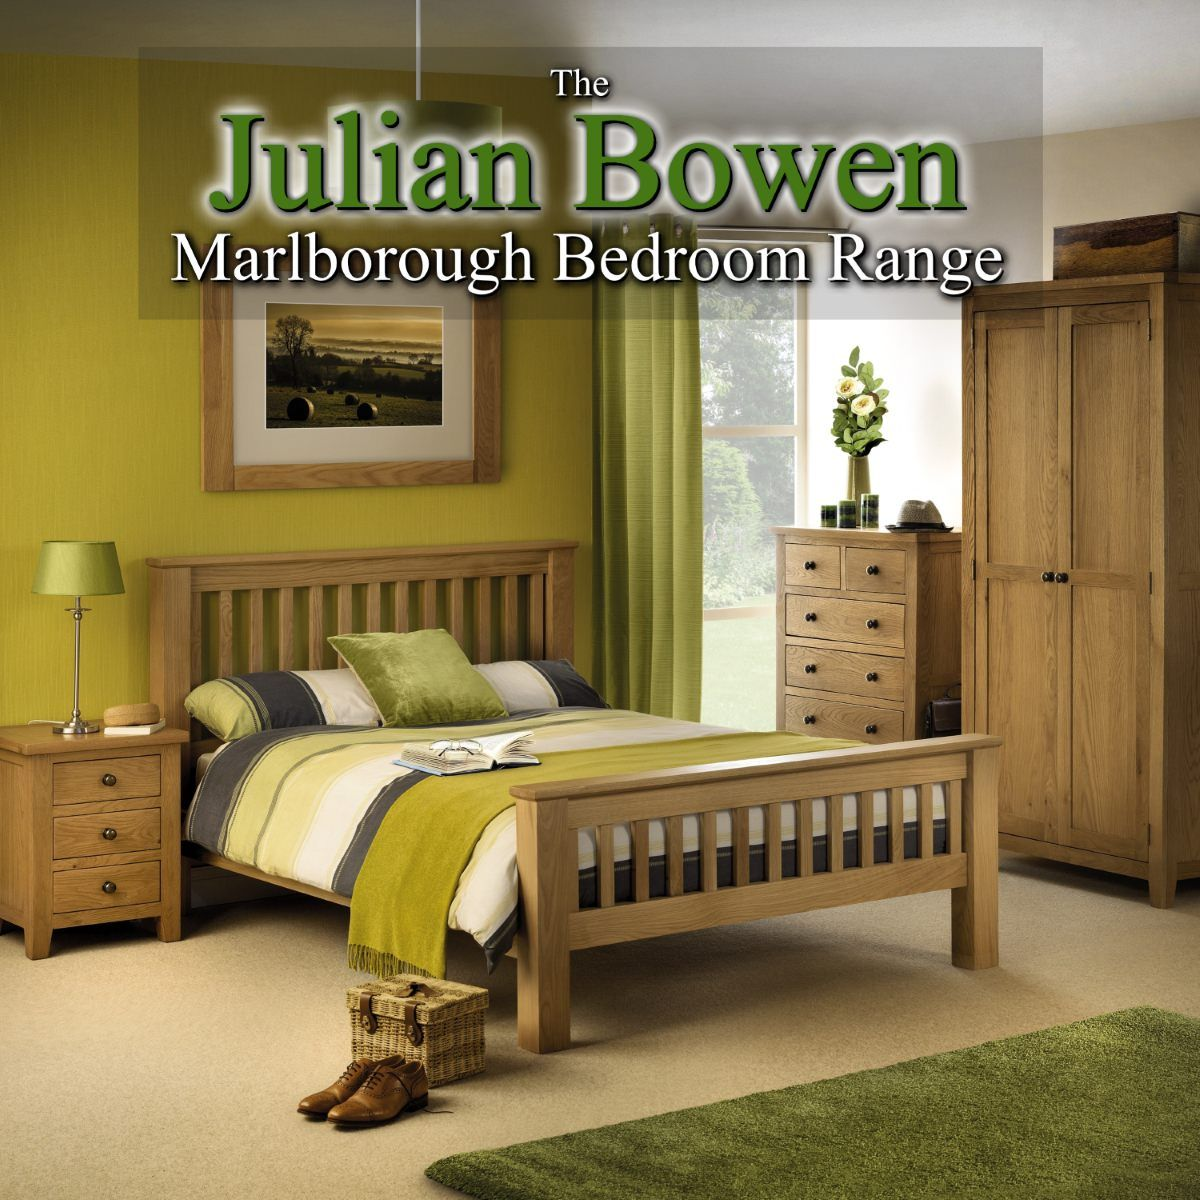 Julian Bowen Marlborough Bedroom Furniture Range from 8 Home